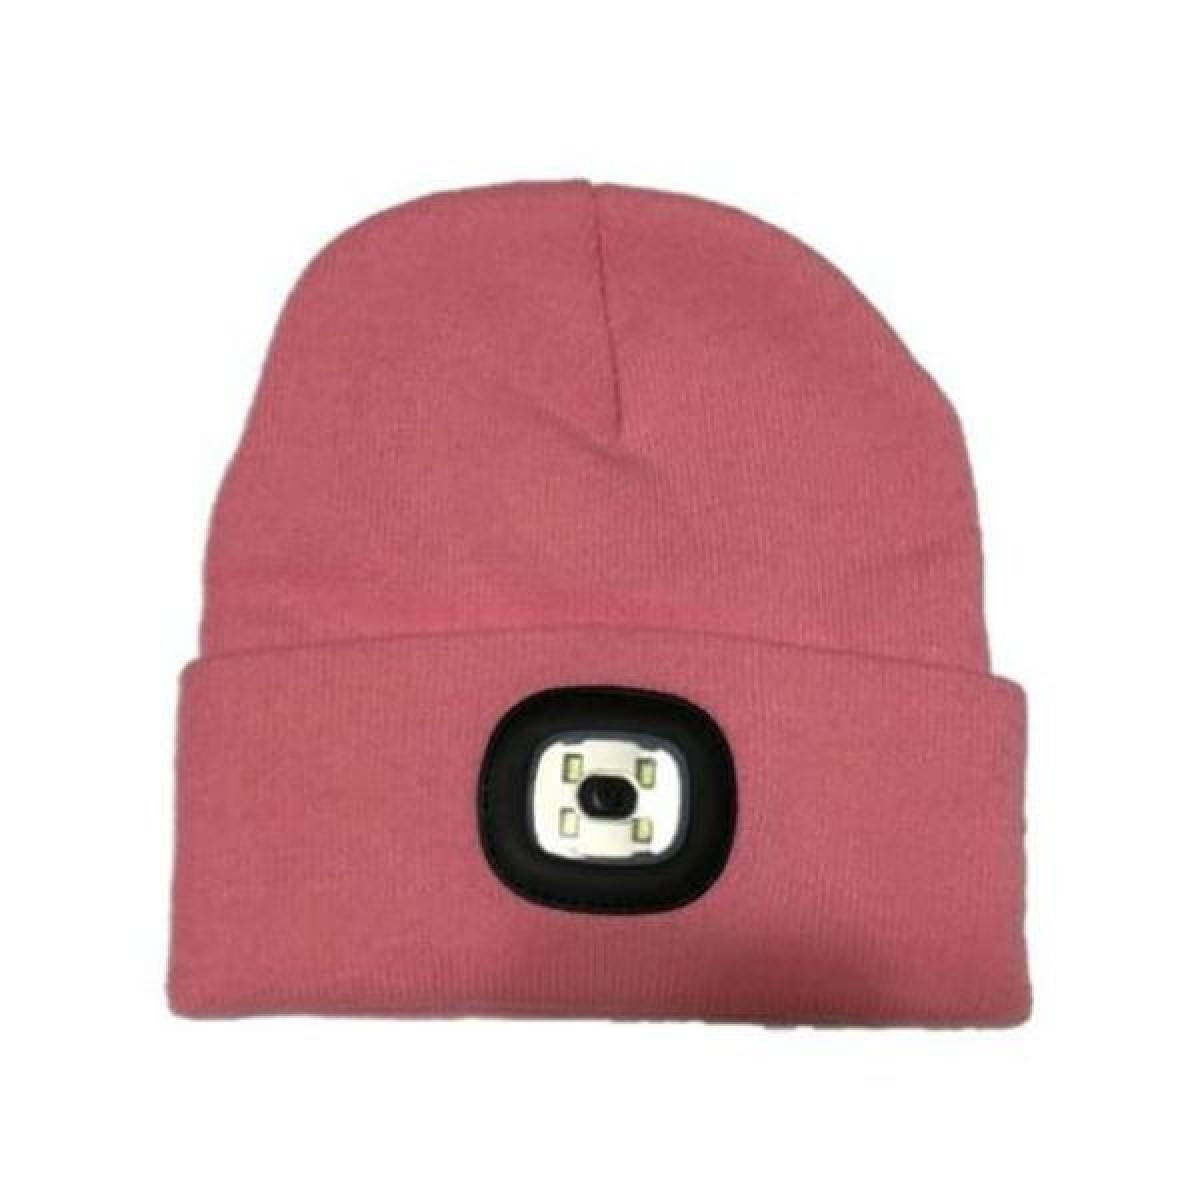 4abacb83bc9 Thinsulate Beanie Hat   Led Light - Pink